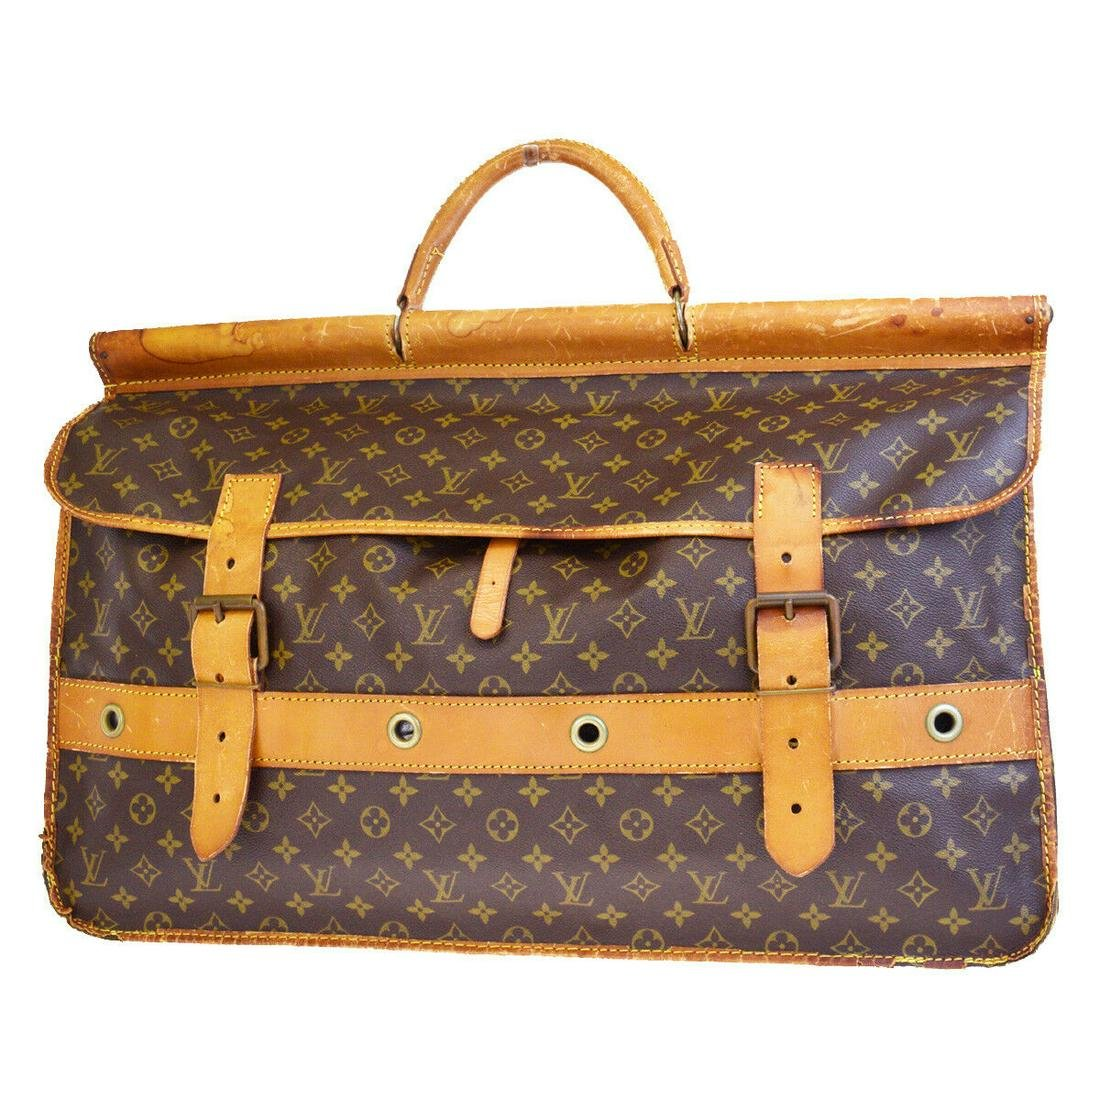 Authentic LOUIS VUITTON LEATHER Monogram, Leather Hand